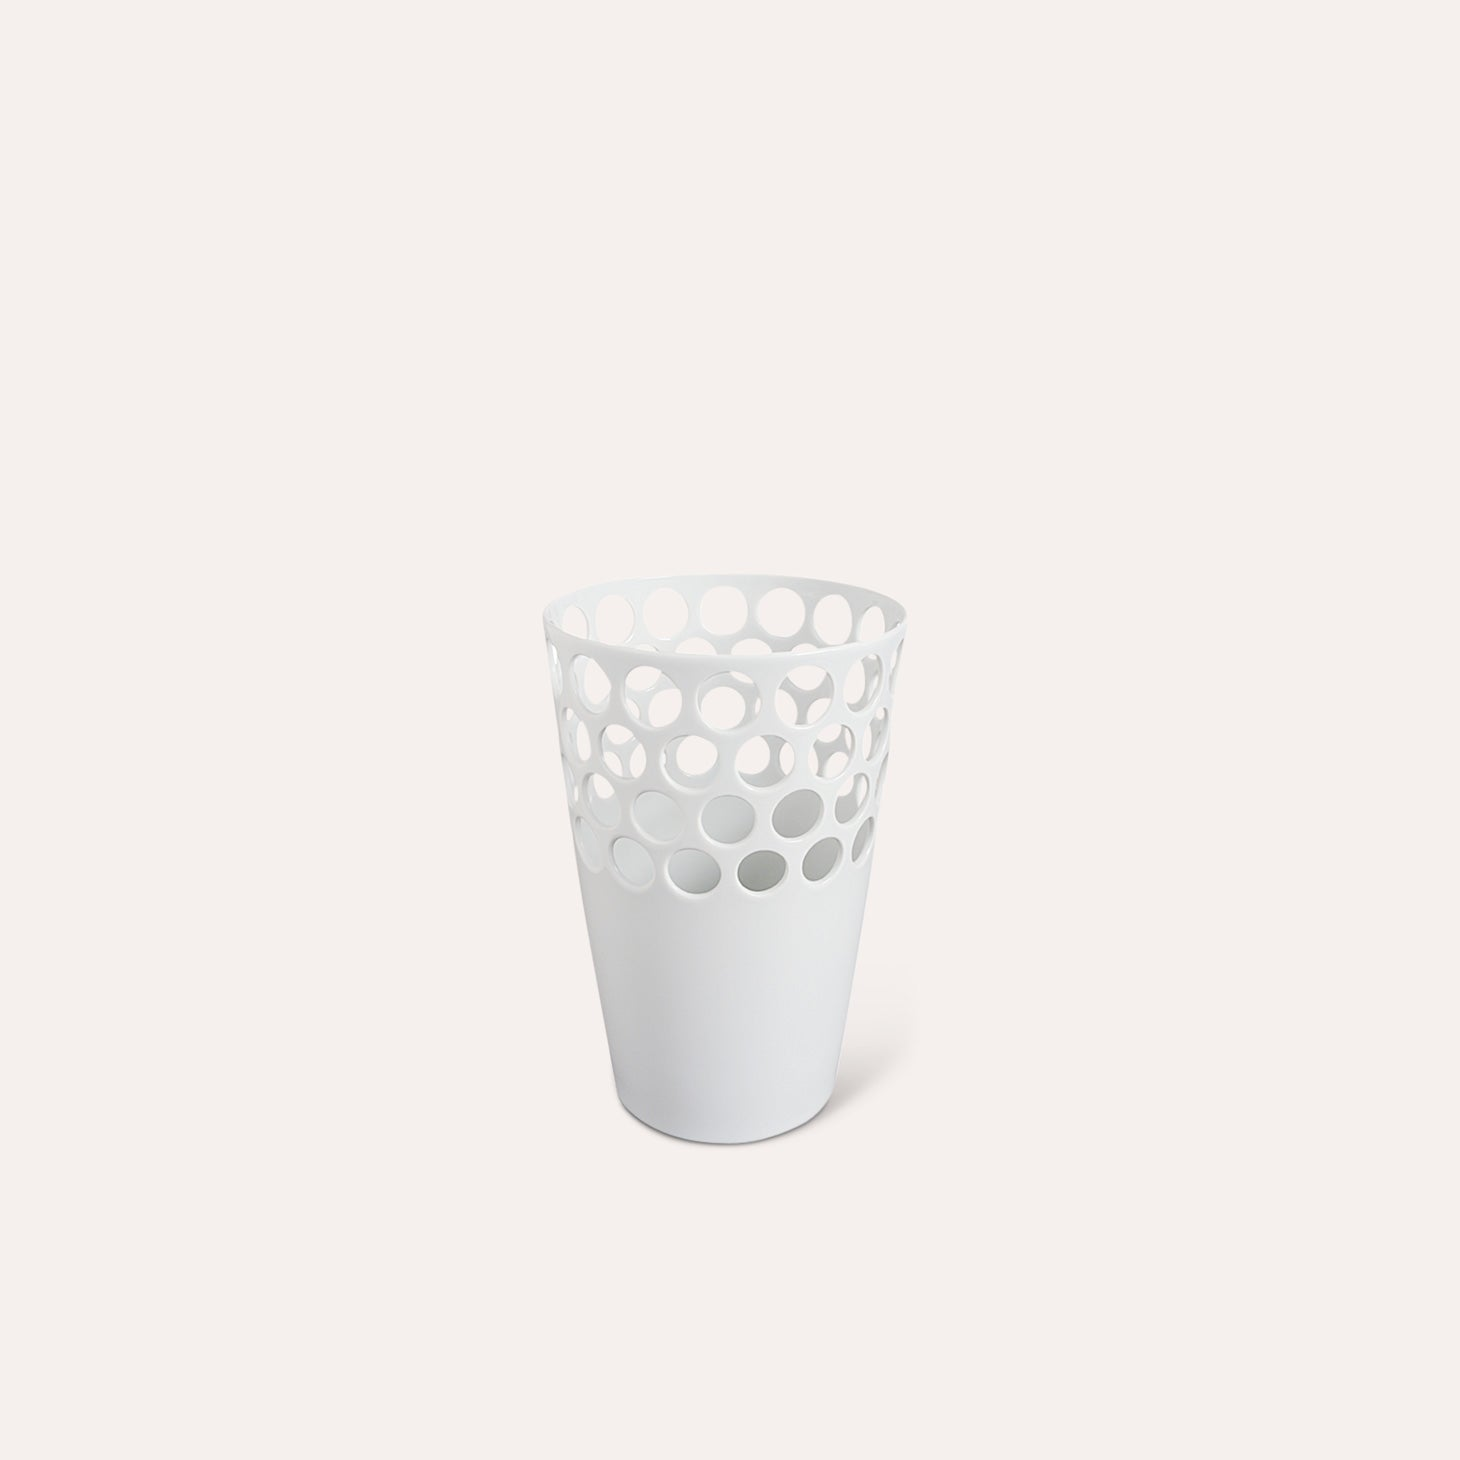 Vase High with Piercing No. 1694 Decorative Objects Konstantin Grcic Designer Furniture Sku: 542-100-10259